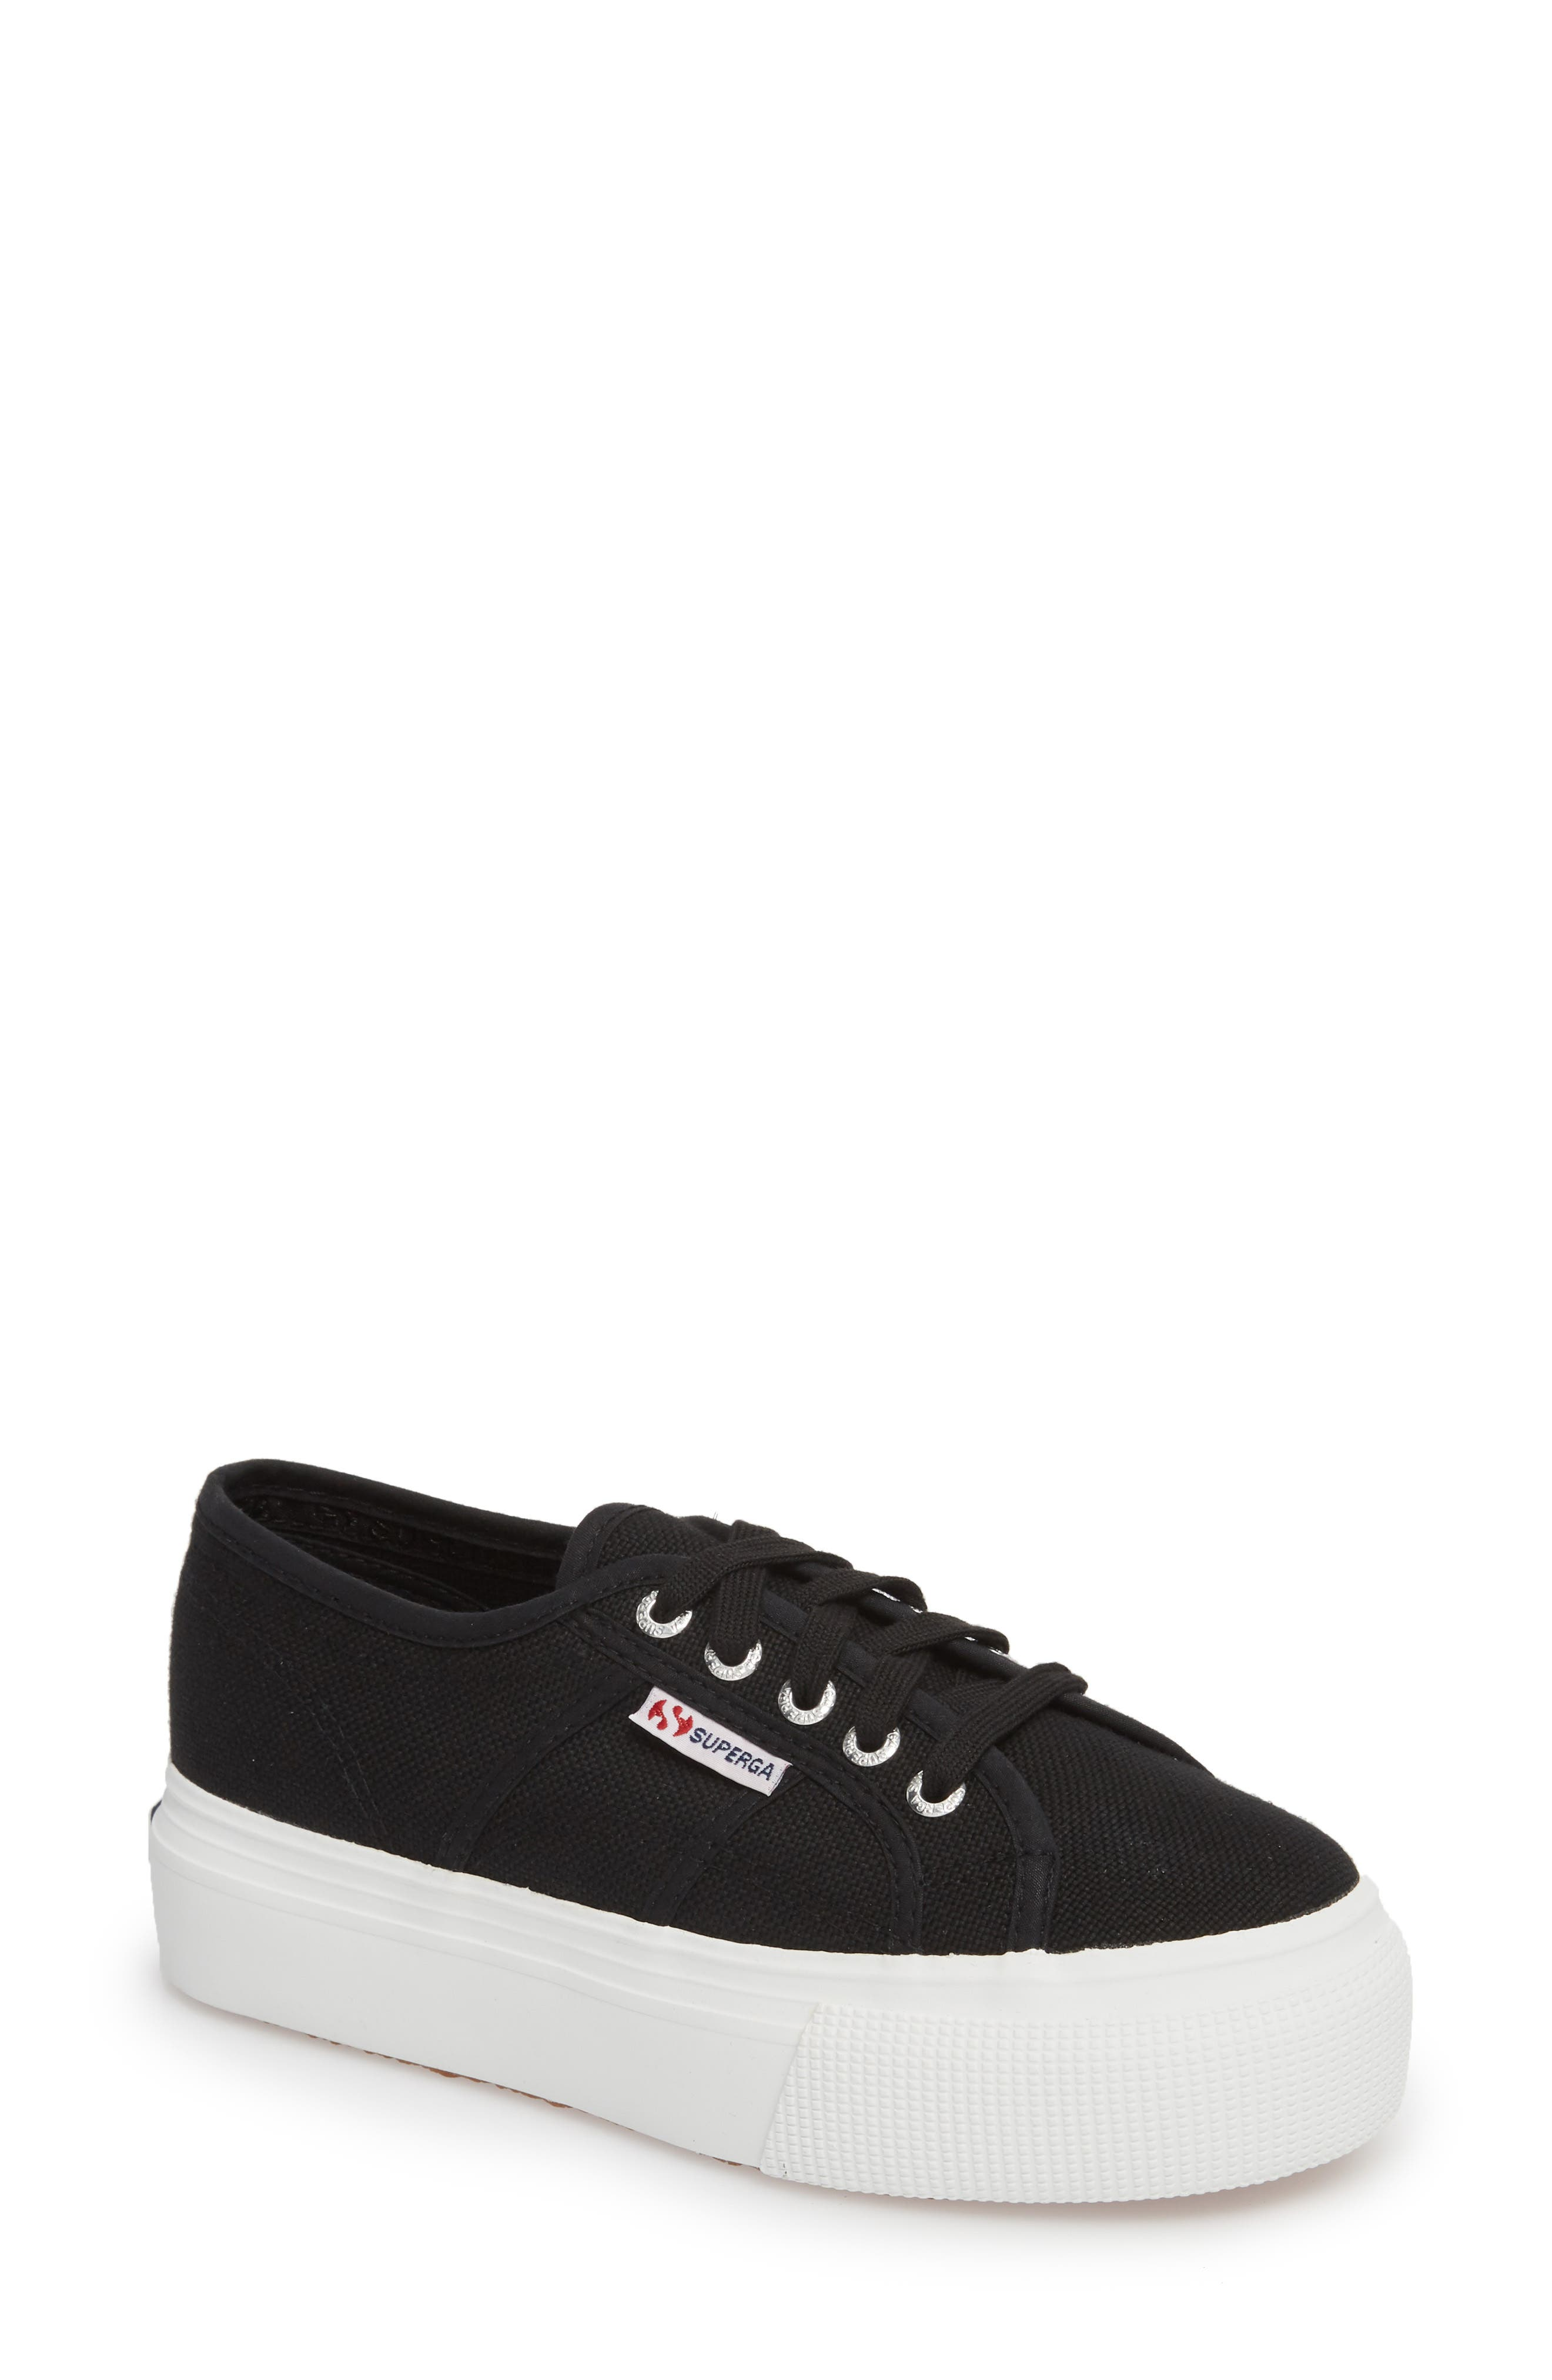 ,                             'Acot Linea' Sneaker,                             Main thumbnail 1, color,                             BLACK/ WHITE